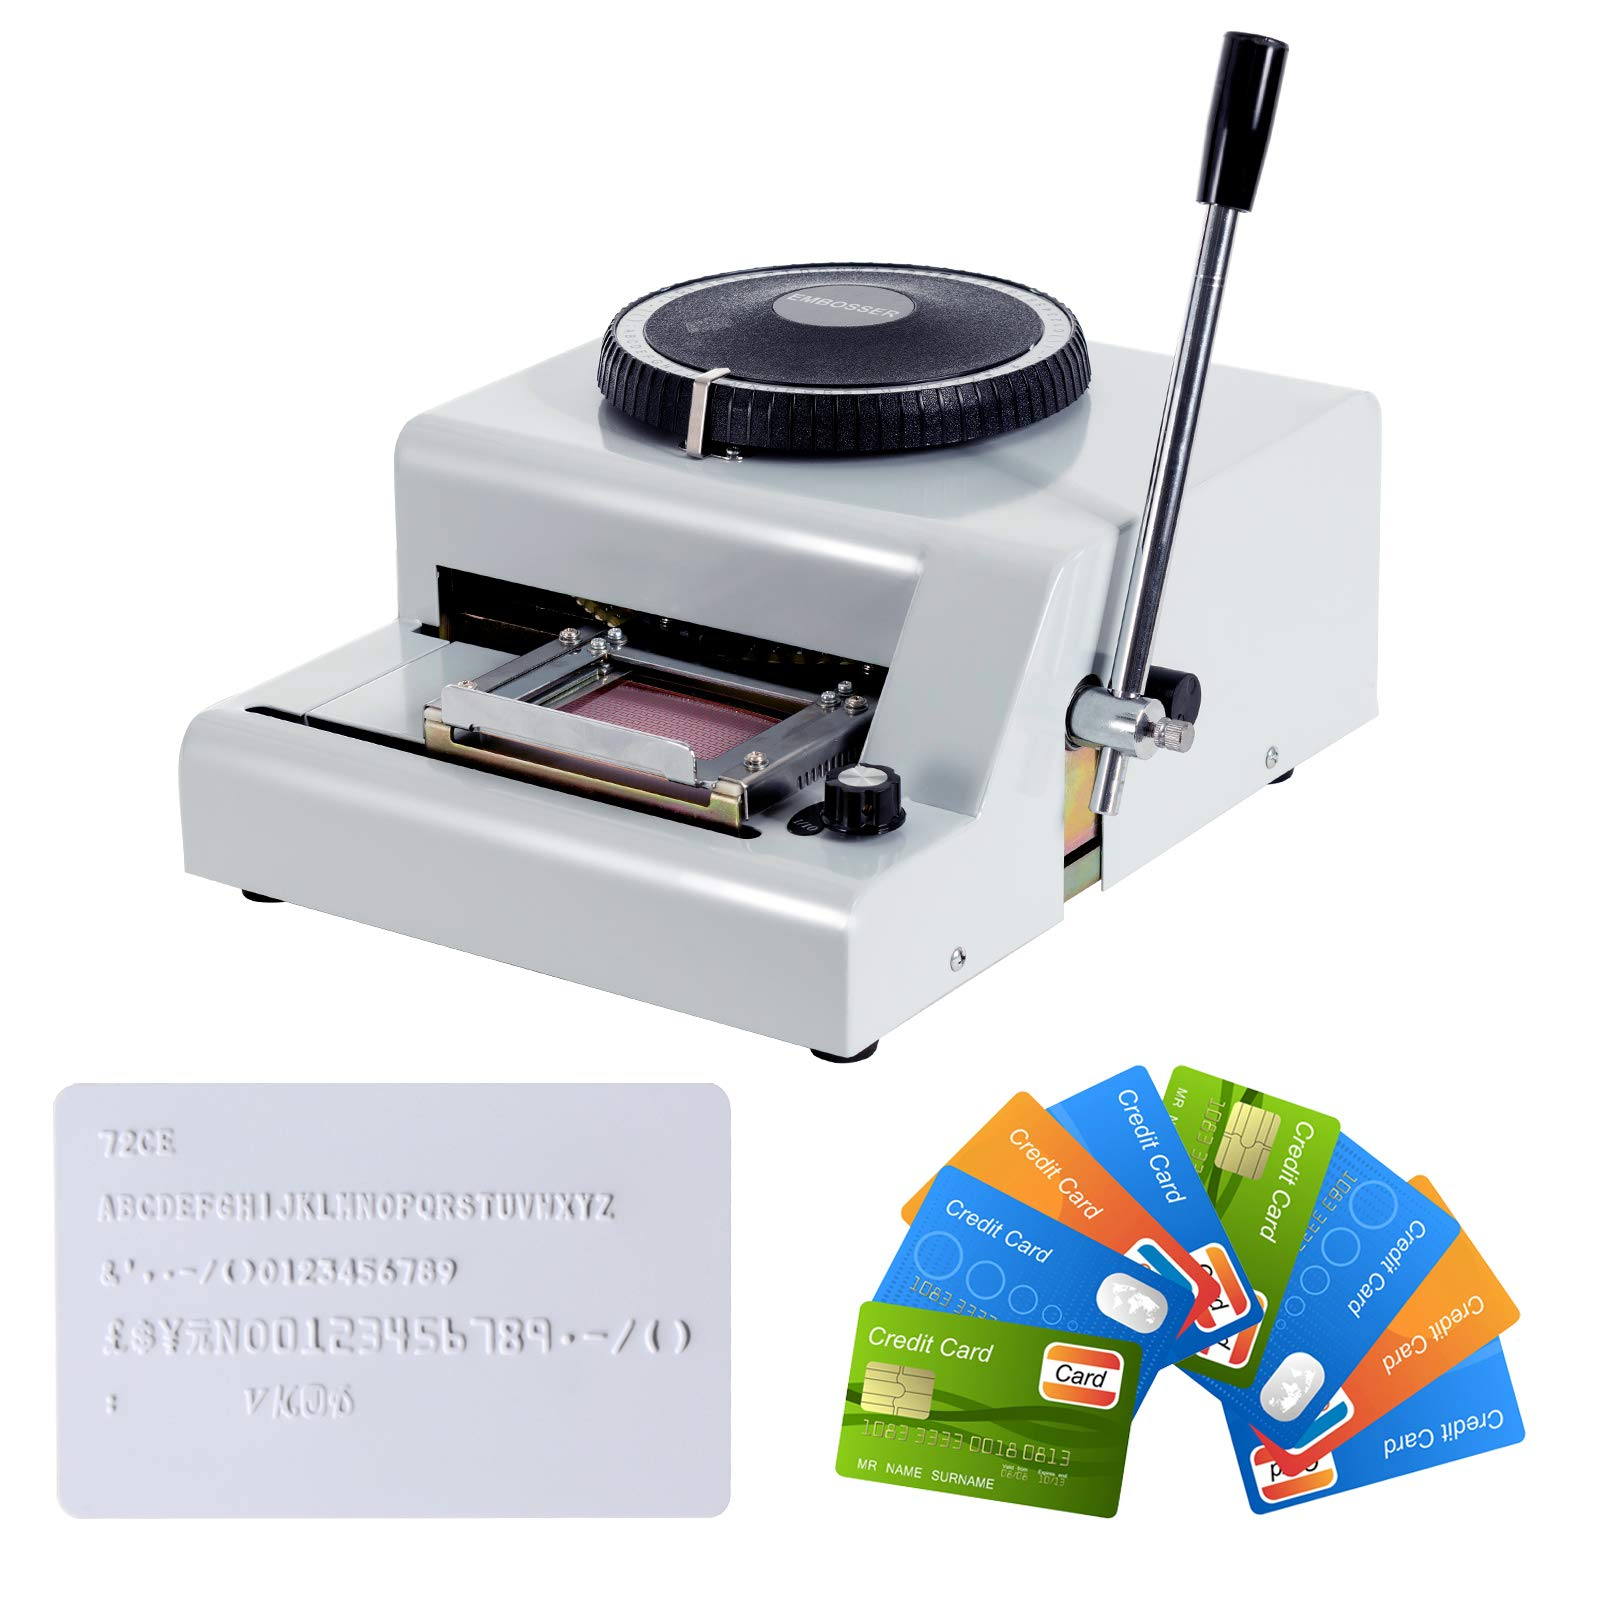 SUNCOO Embossing Machine 72 Character Letter Manual Card Embosser Stamping Machine for PVC, Credit, VIP, ID Card by SUNCOO